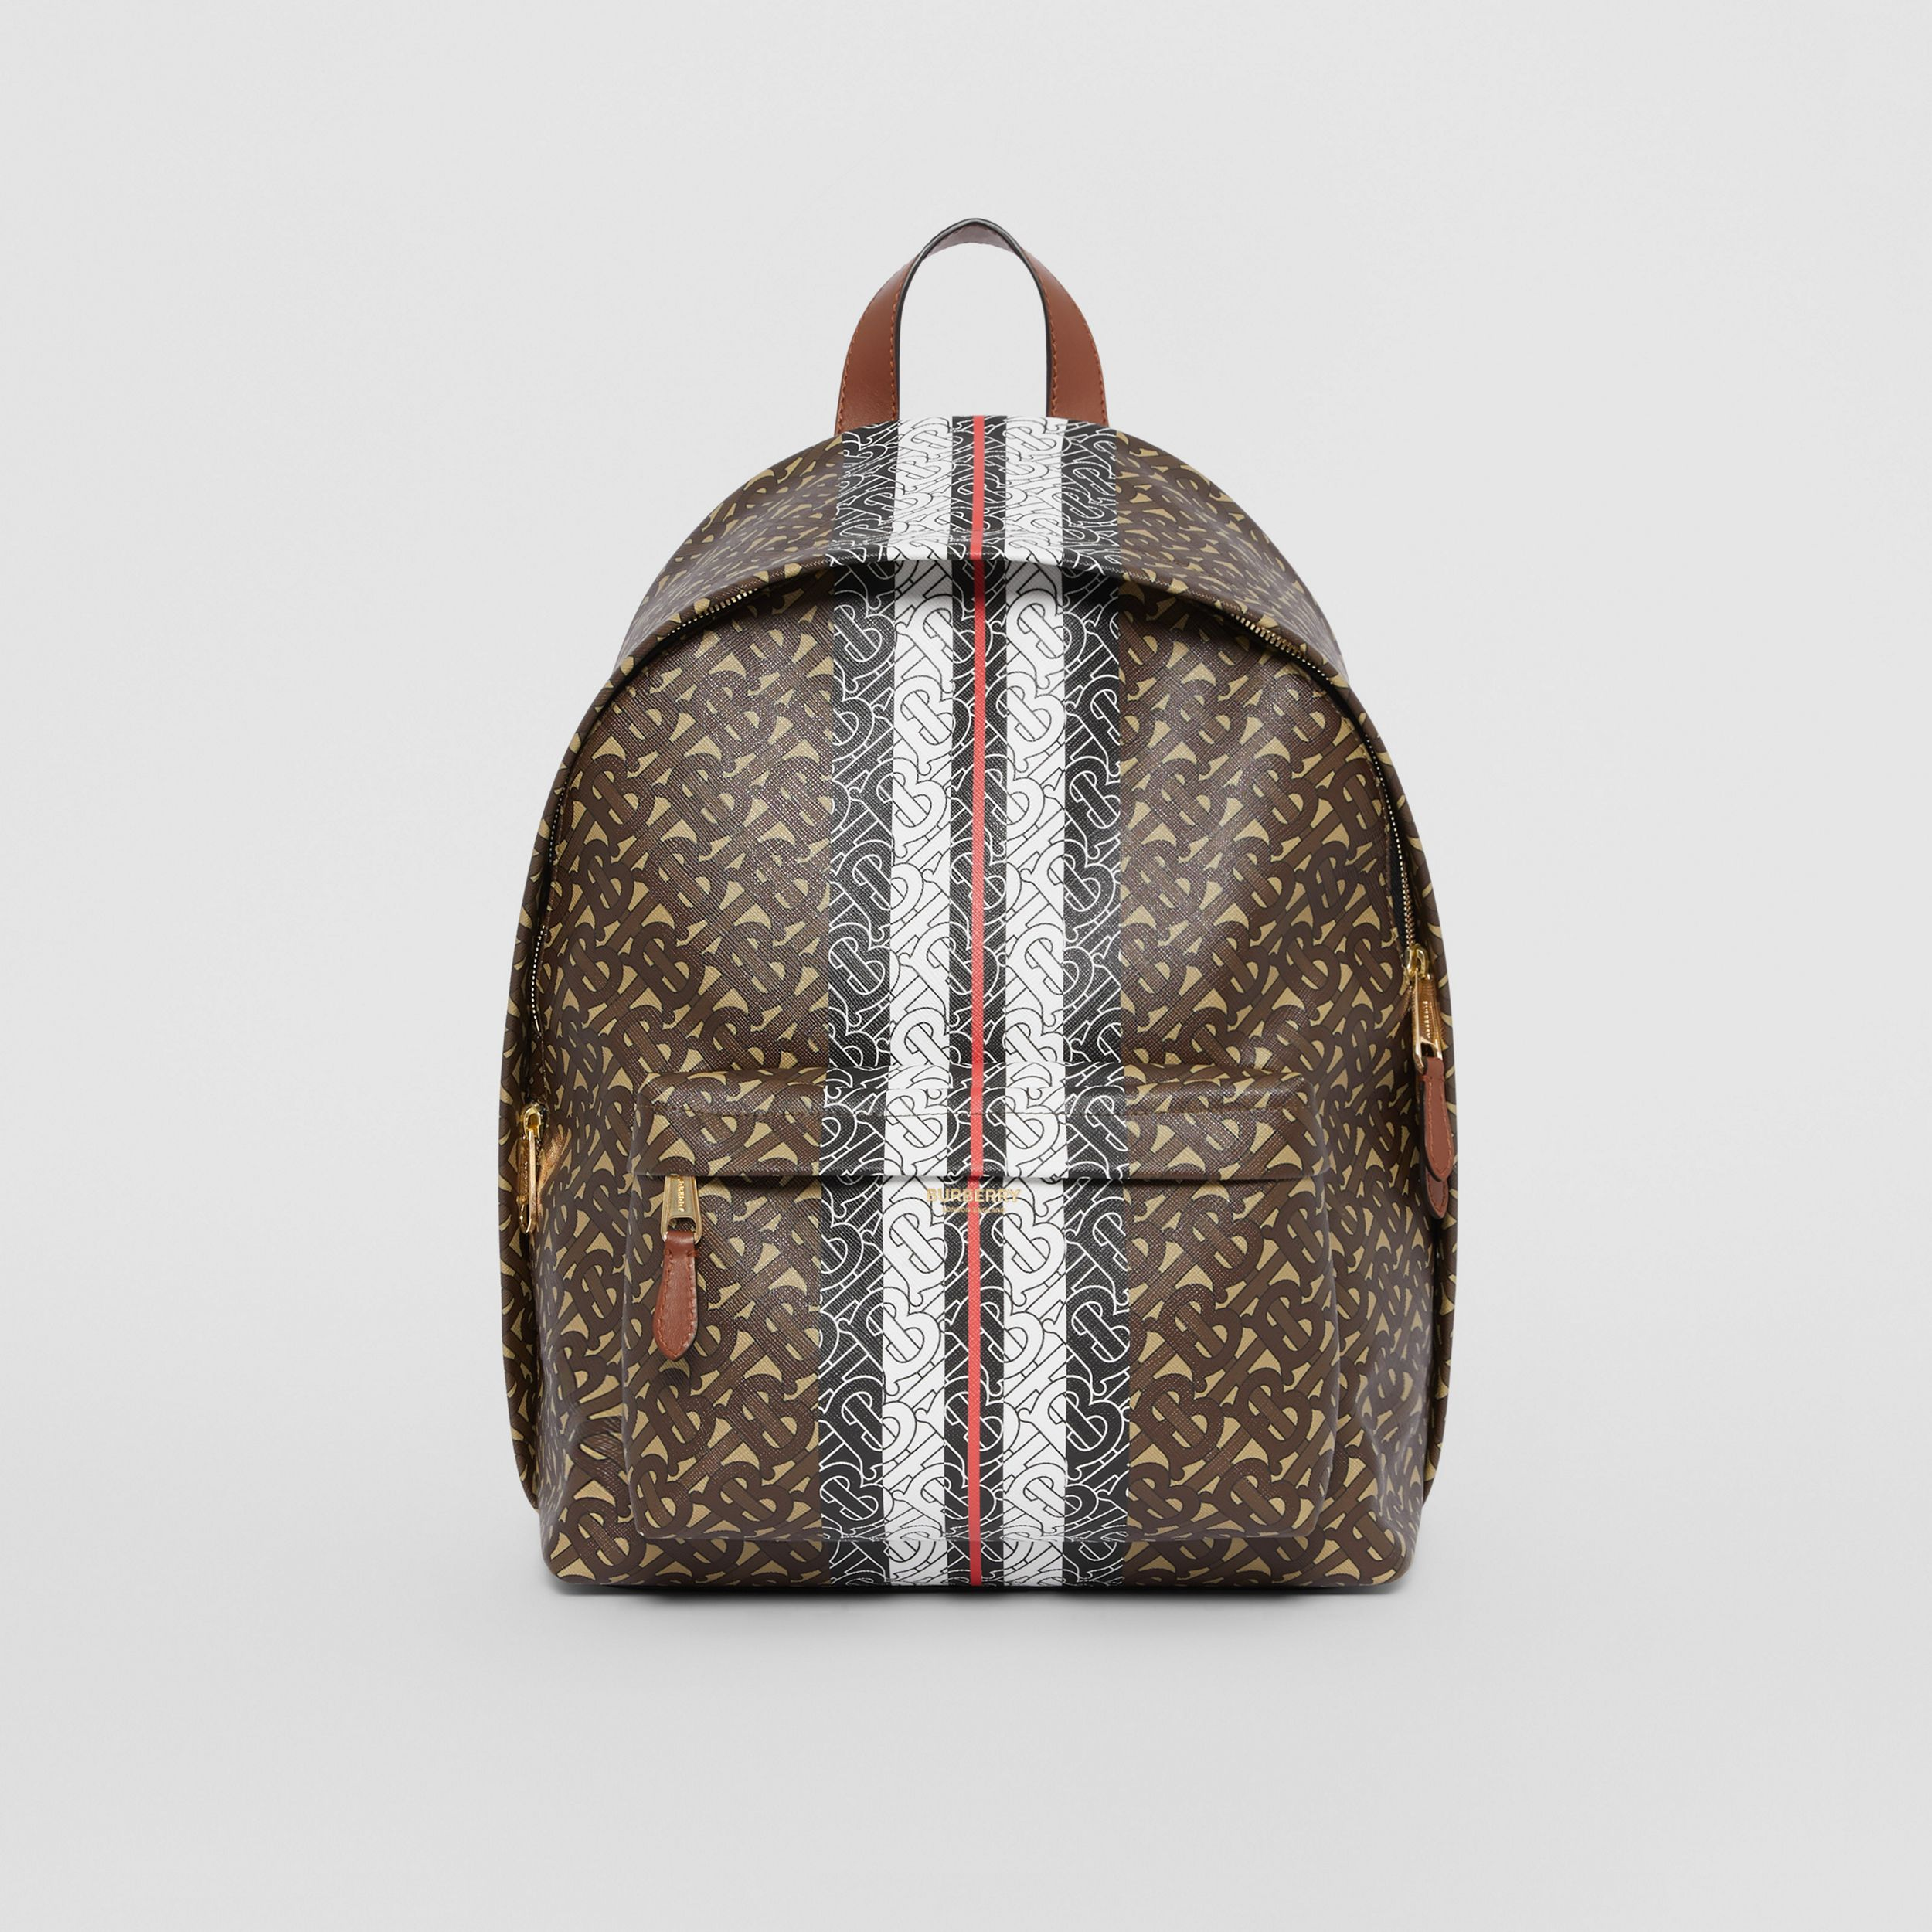 Monogram Stripe Print E-canvas Backpack in Bridle Brown | Burberry United Kingdom - 1